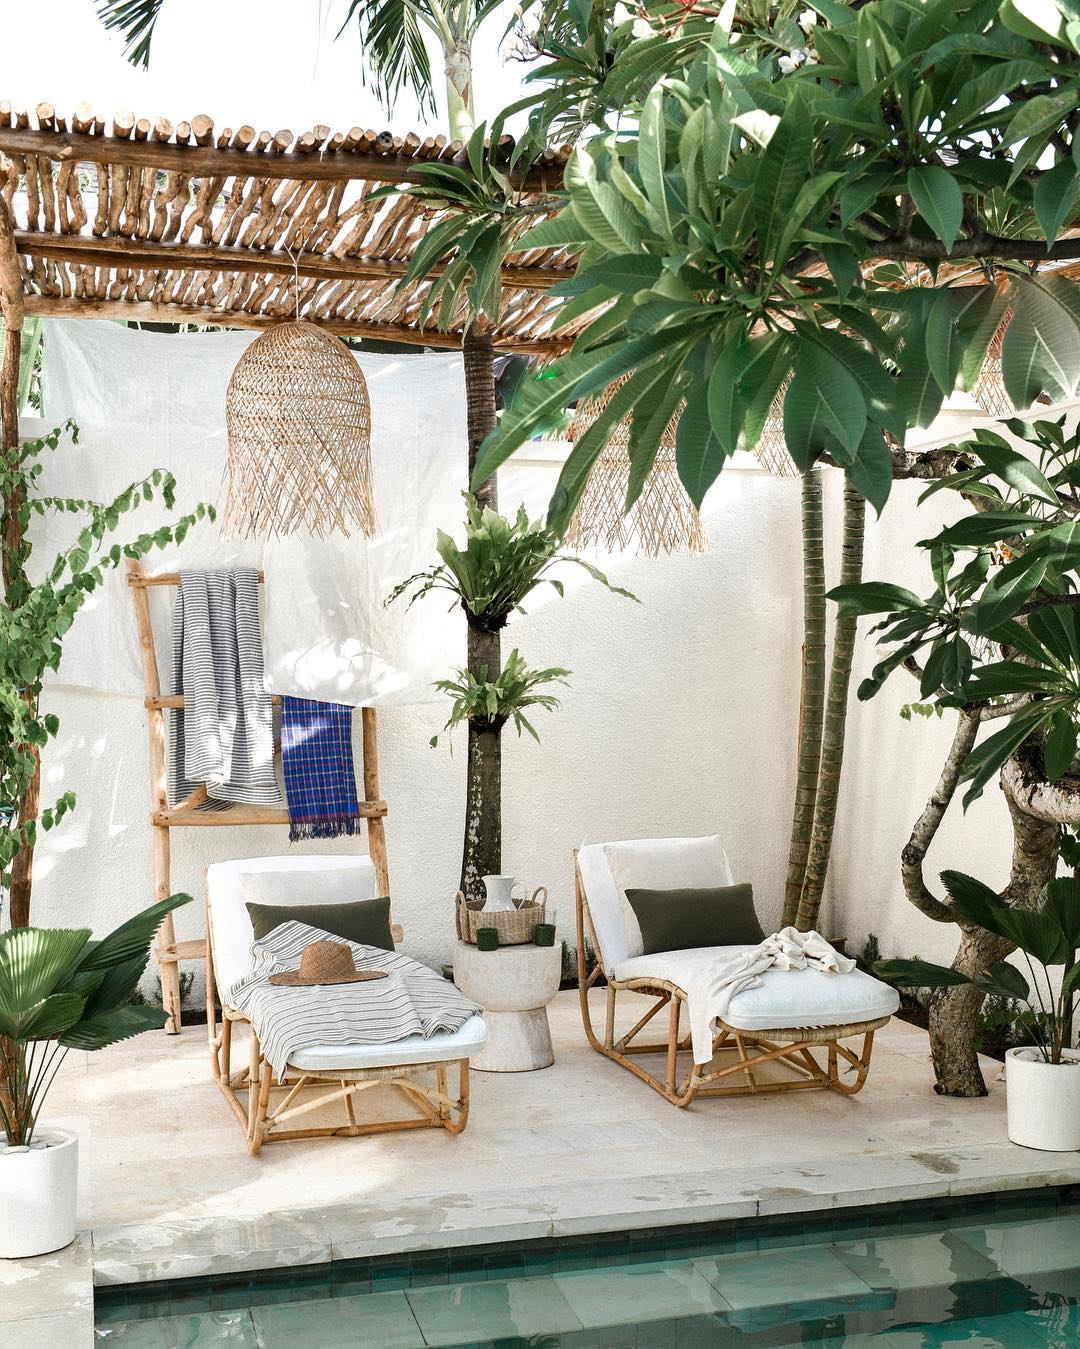 Villa Arjuna's pool area a couple of bentwood lounge chairs concrete side table in white wooden leaning ladder small log shade idea